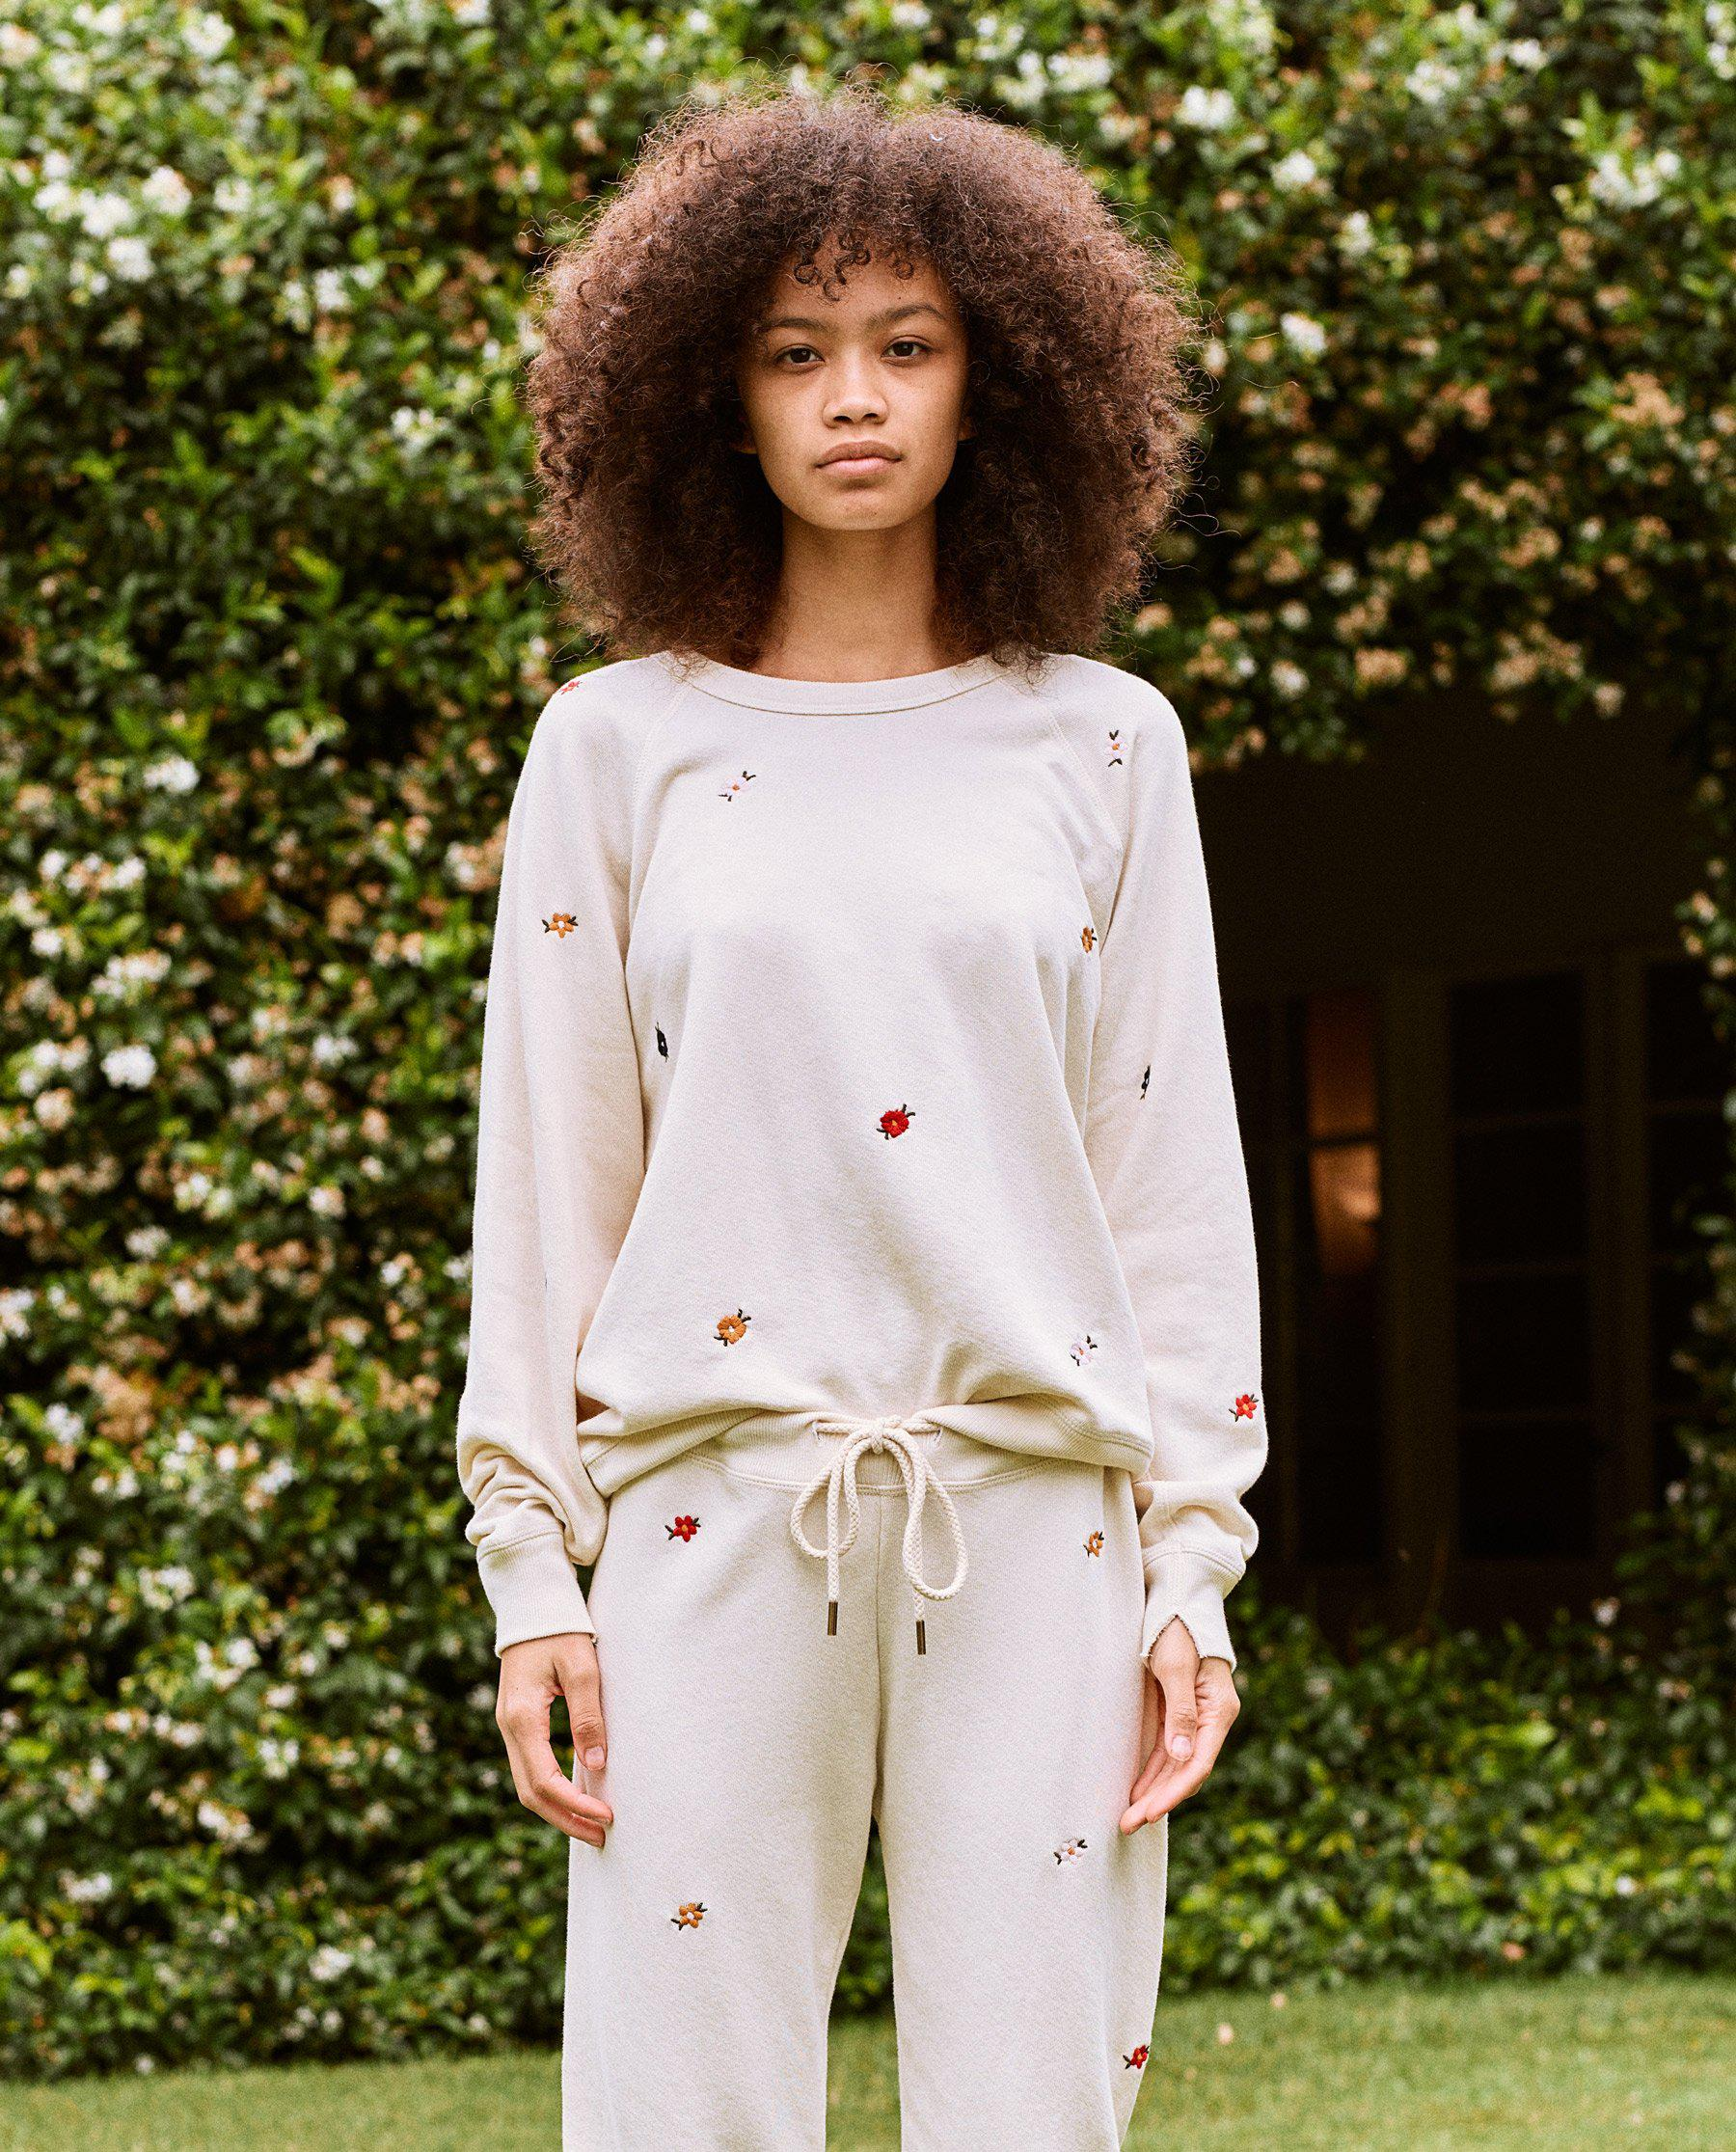 The College Sweatshirt. Embroidered -- Washed White with Seed Floral Embroidery